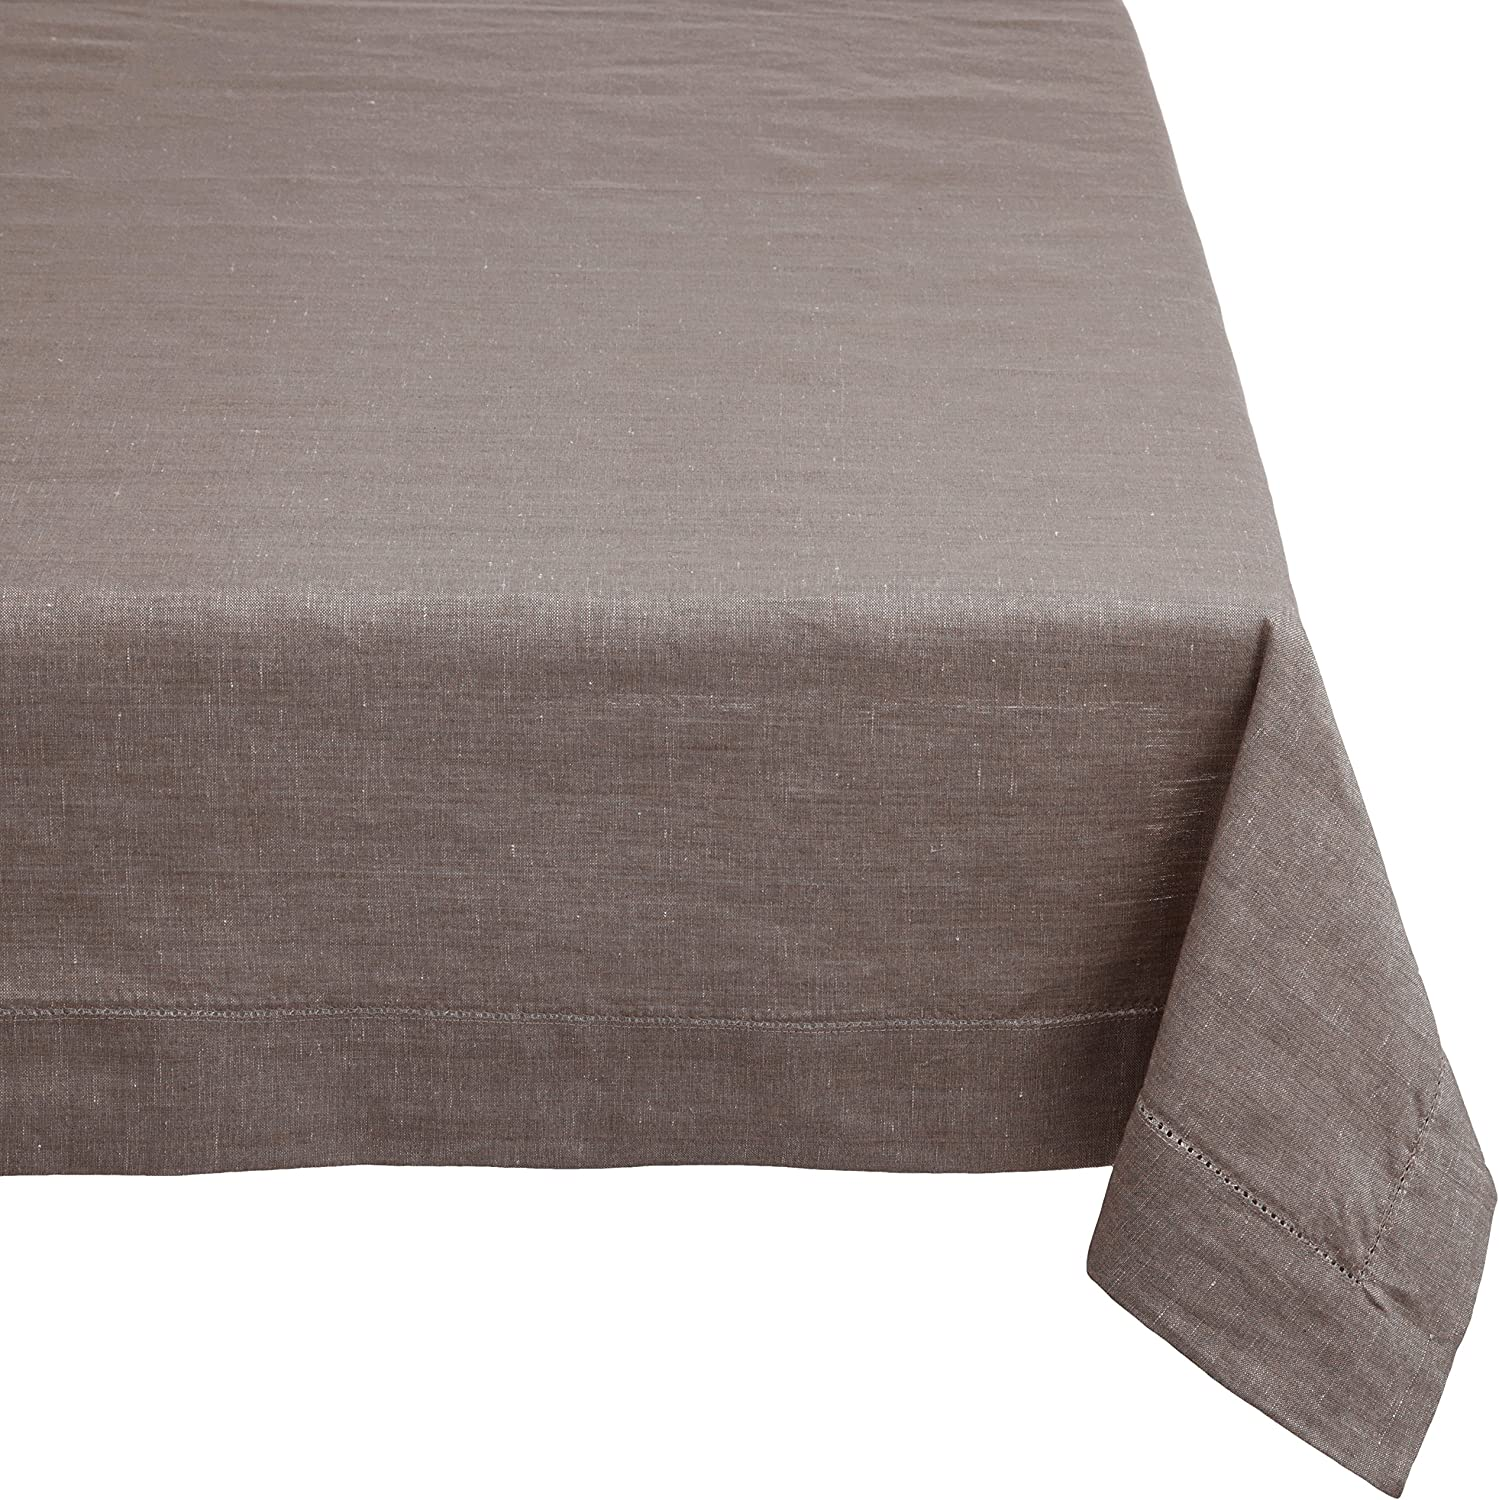 Mahogany T08T120CR Mail order cheap Financial sales sale Rectangle Linen Tablecloth Hole Stitch with